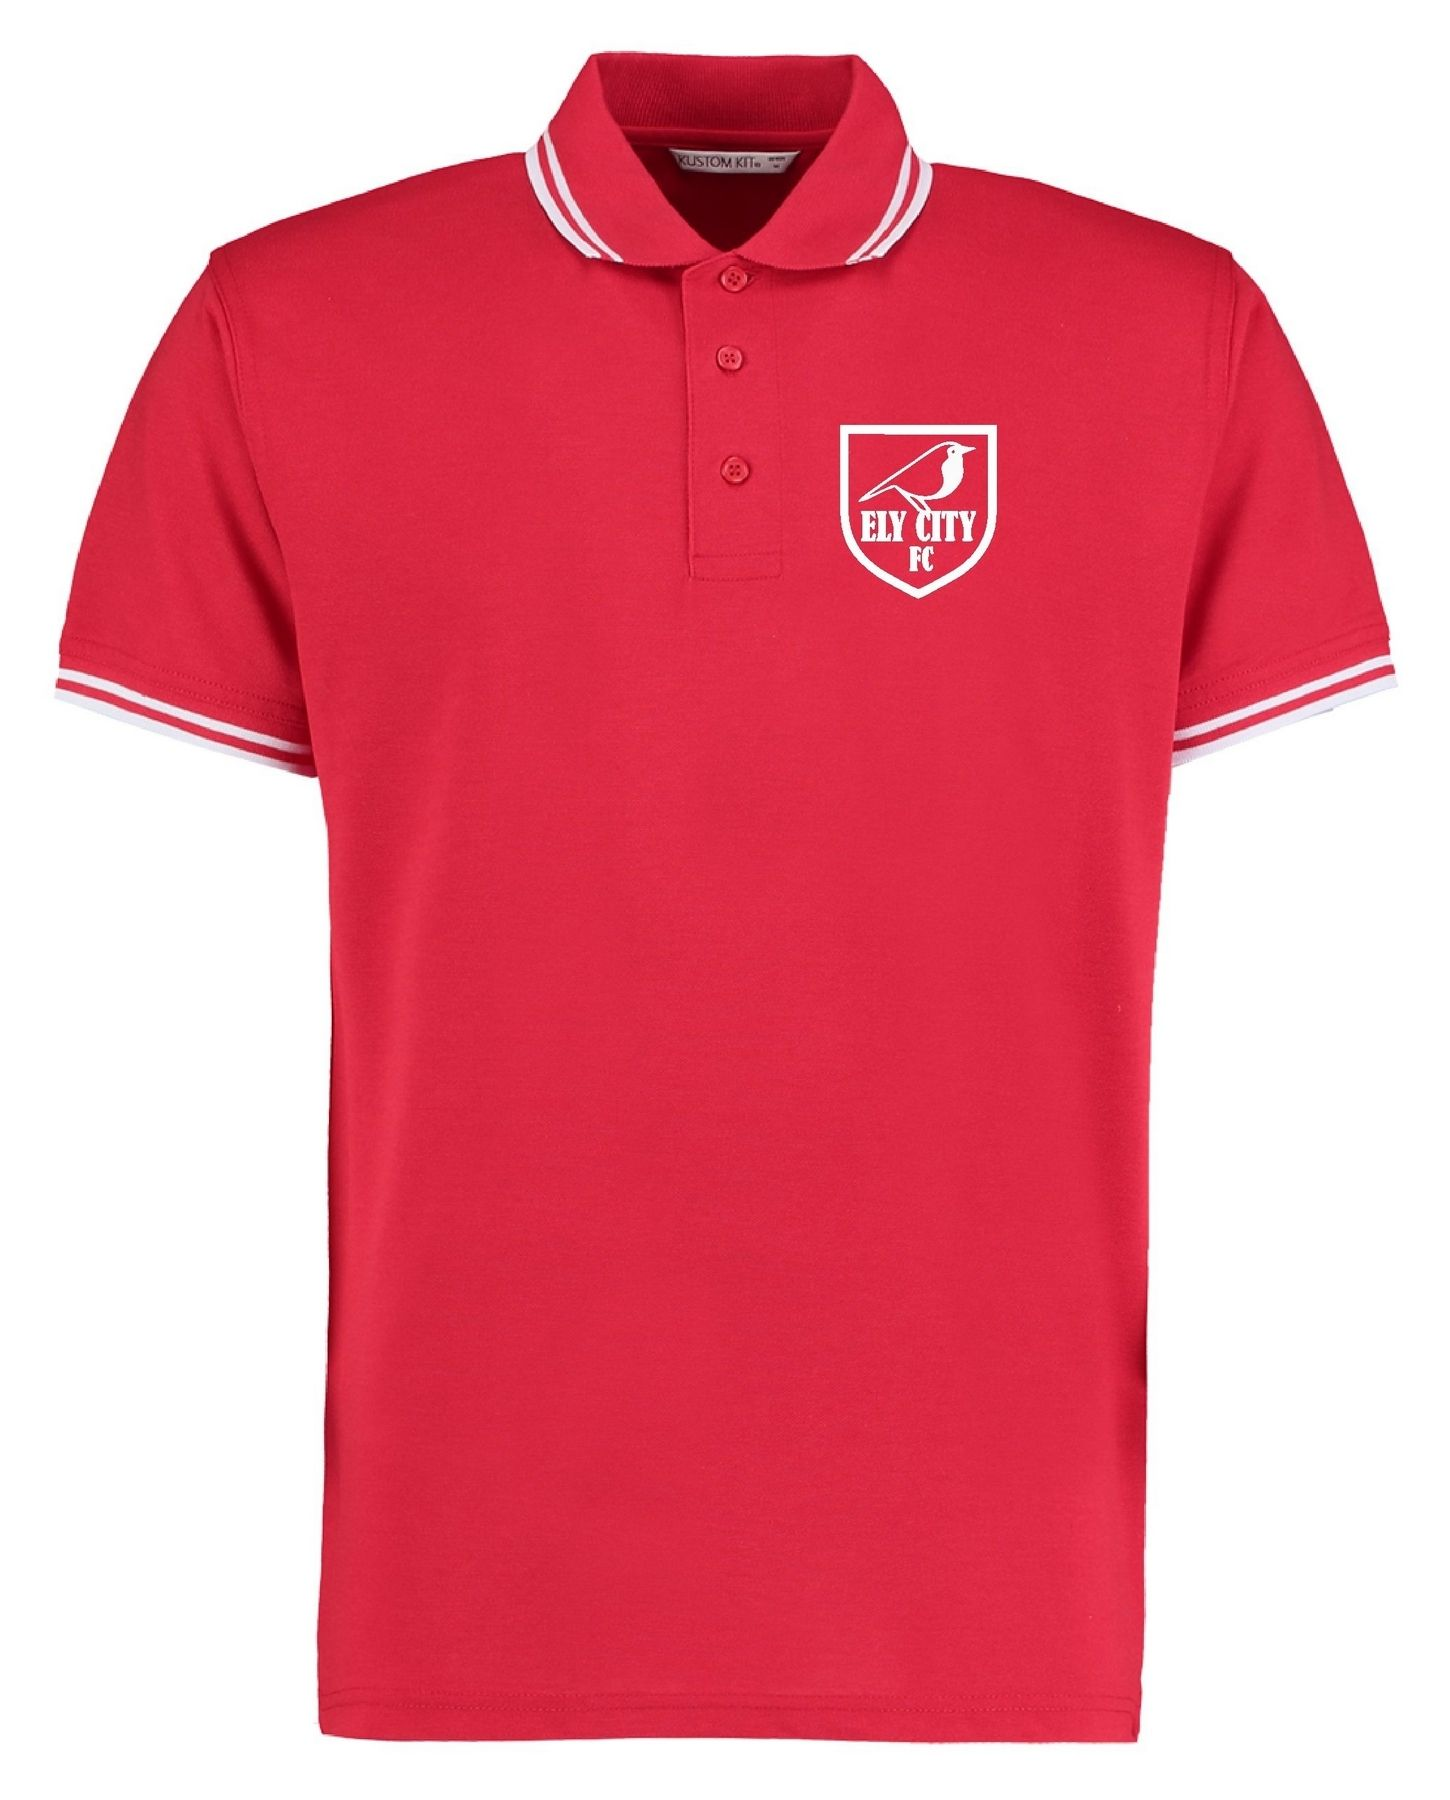 ECFC – Tipped Polo Shirt in Red